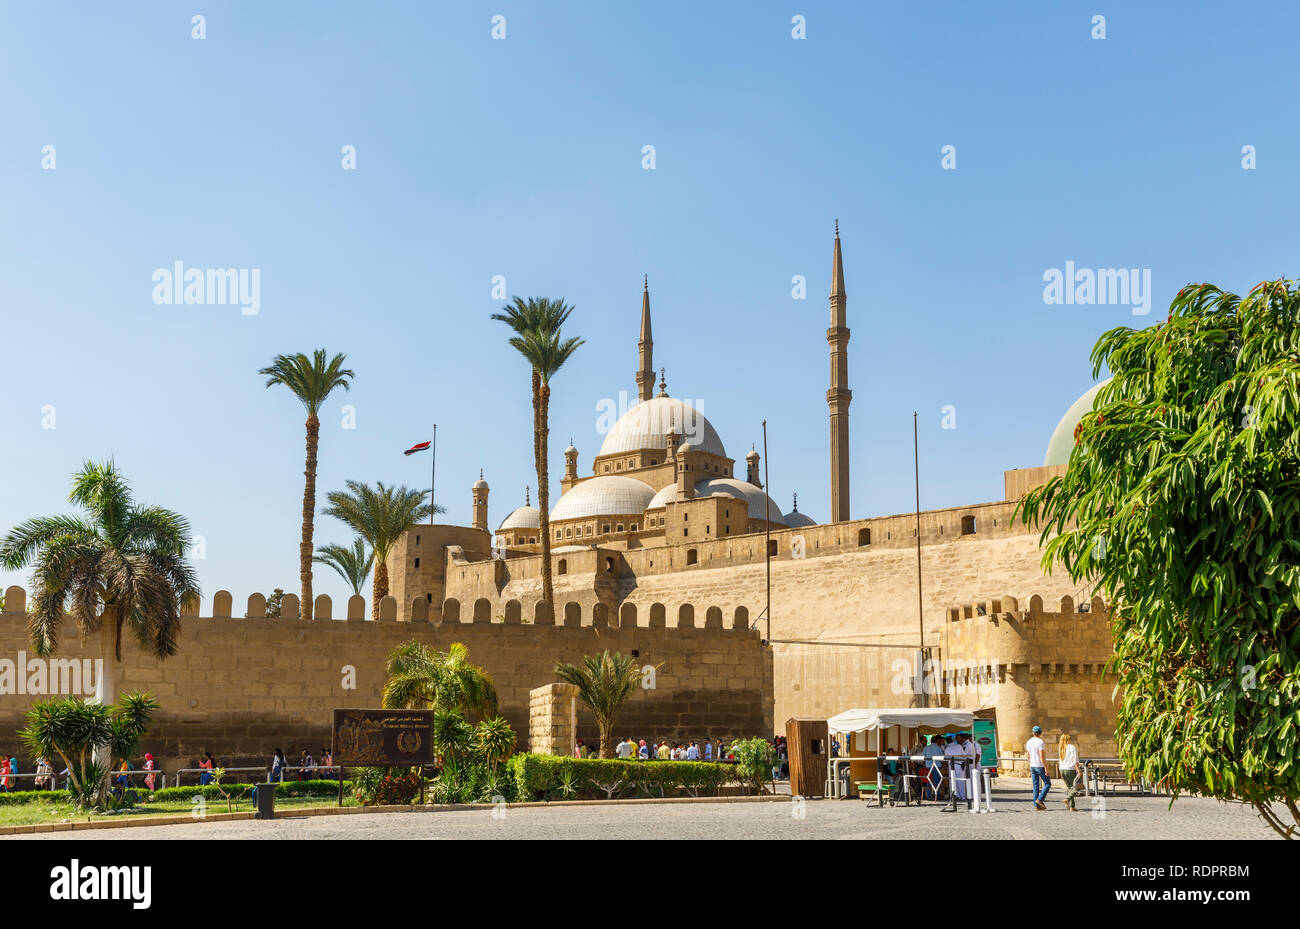 Great Mosque of Muhammad Ali Pasha within the walls of  the Saladin Citadel, a medieval Islamic fortification in  Cairo, Egypt Stock Photo